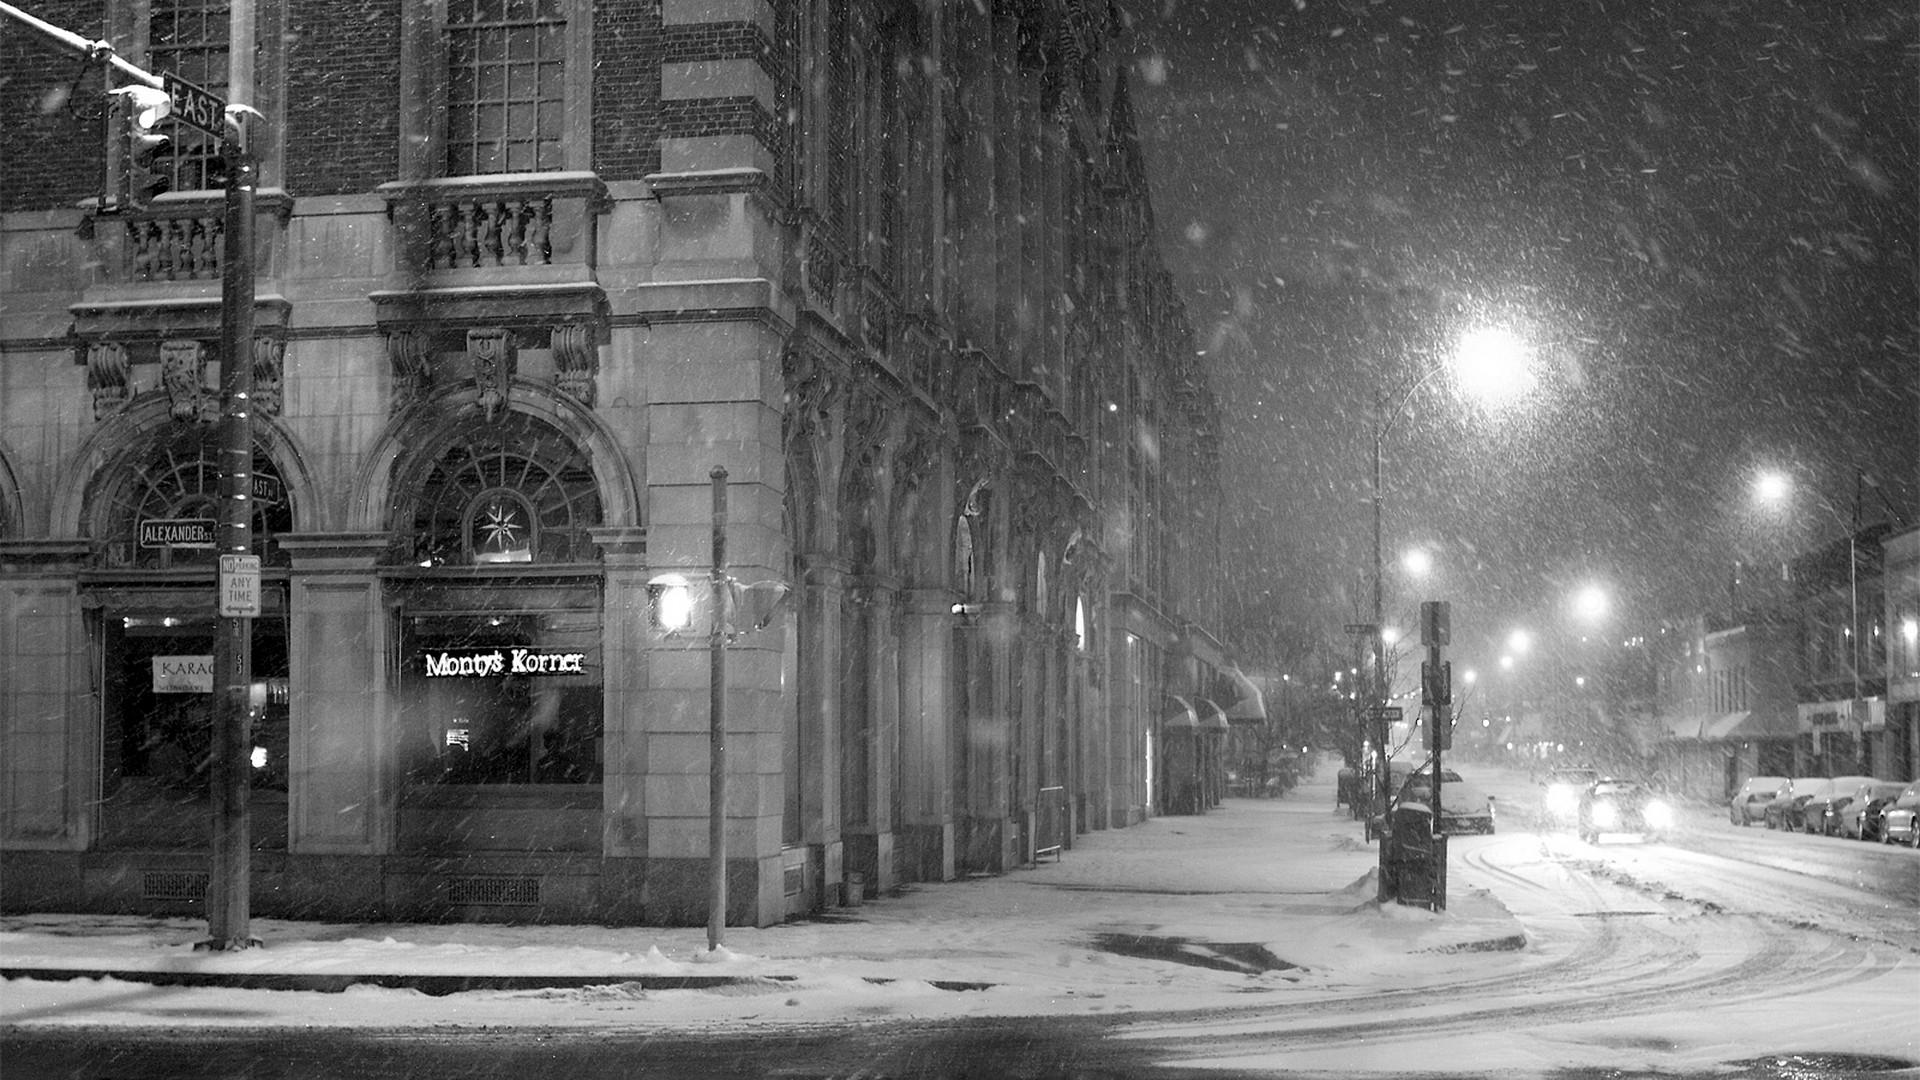 City-Street-Snow-Winter-Lane-Black-White-1920x1080-Need-iPhone-S-Plus-Background-wallpaper-wpc5803509